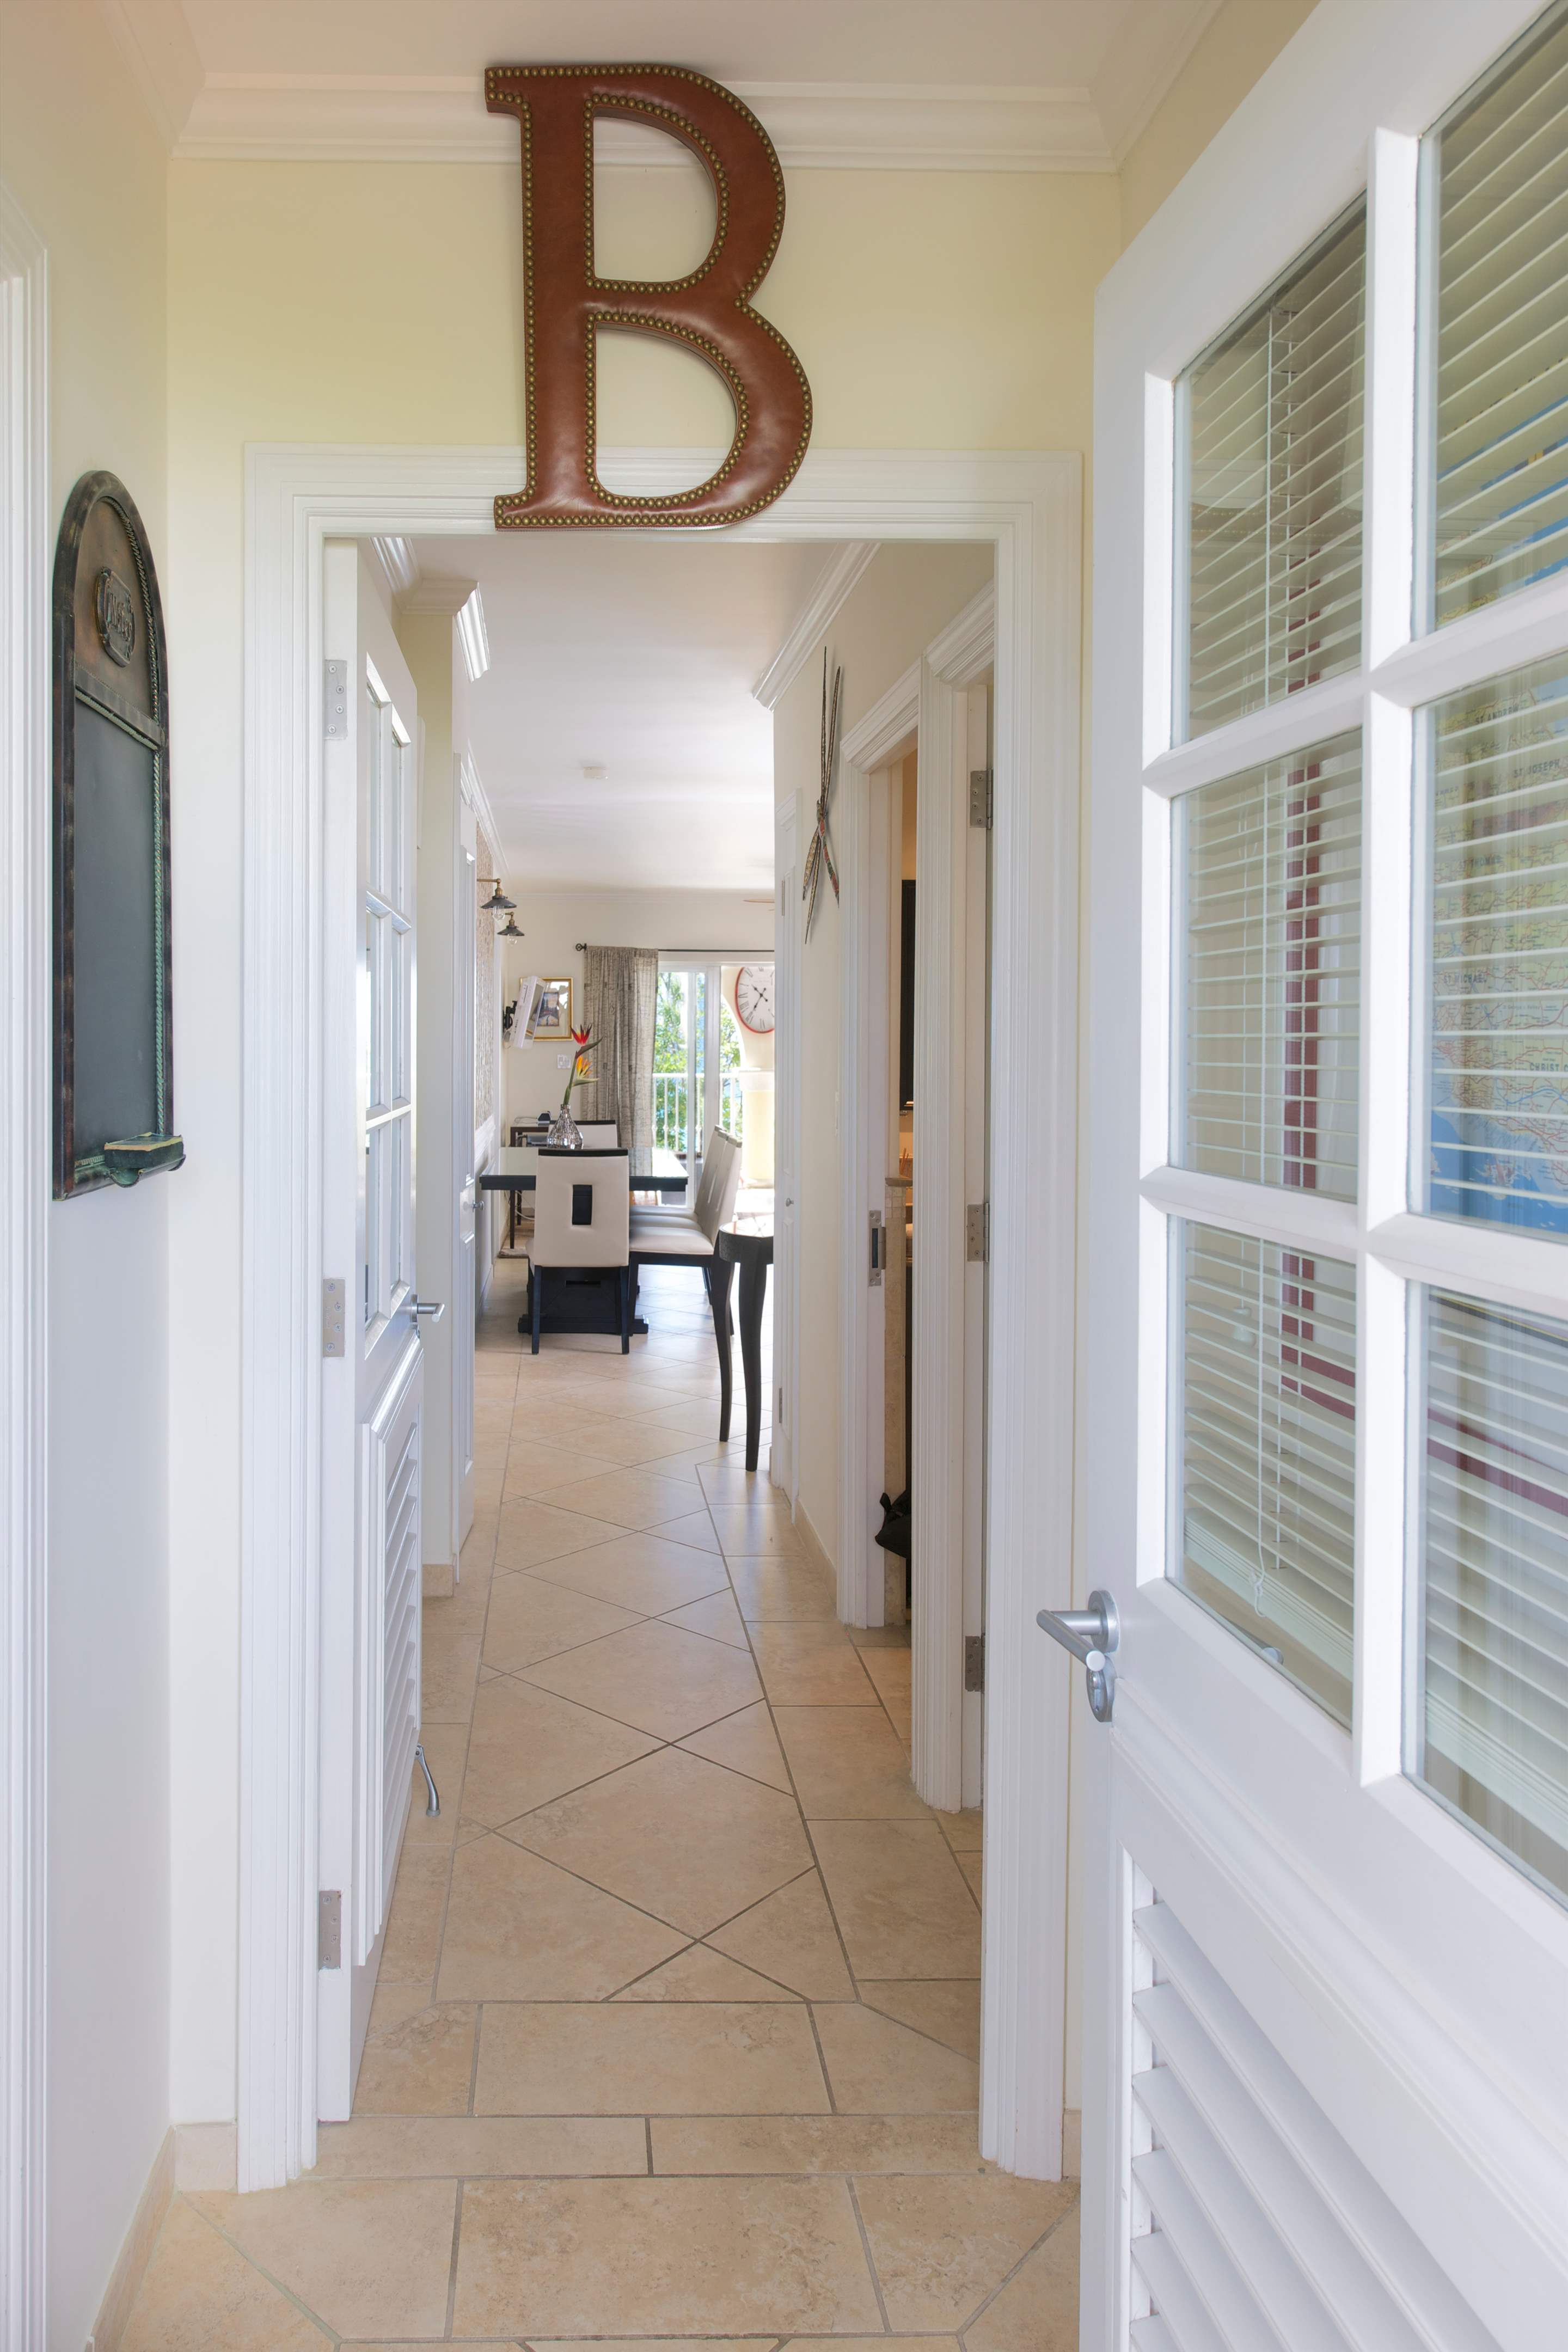 Sapphire Beach 203, 2 bedroom, 3 bedroom apartment in St. Lawrence Gap & South Coast, Barbados Photo #11